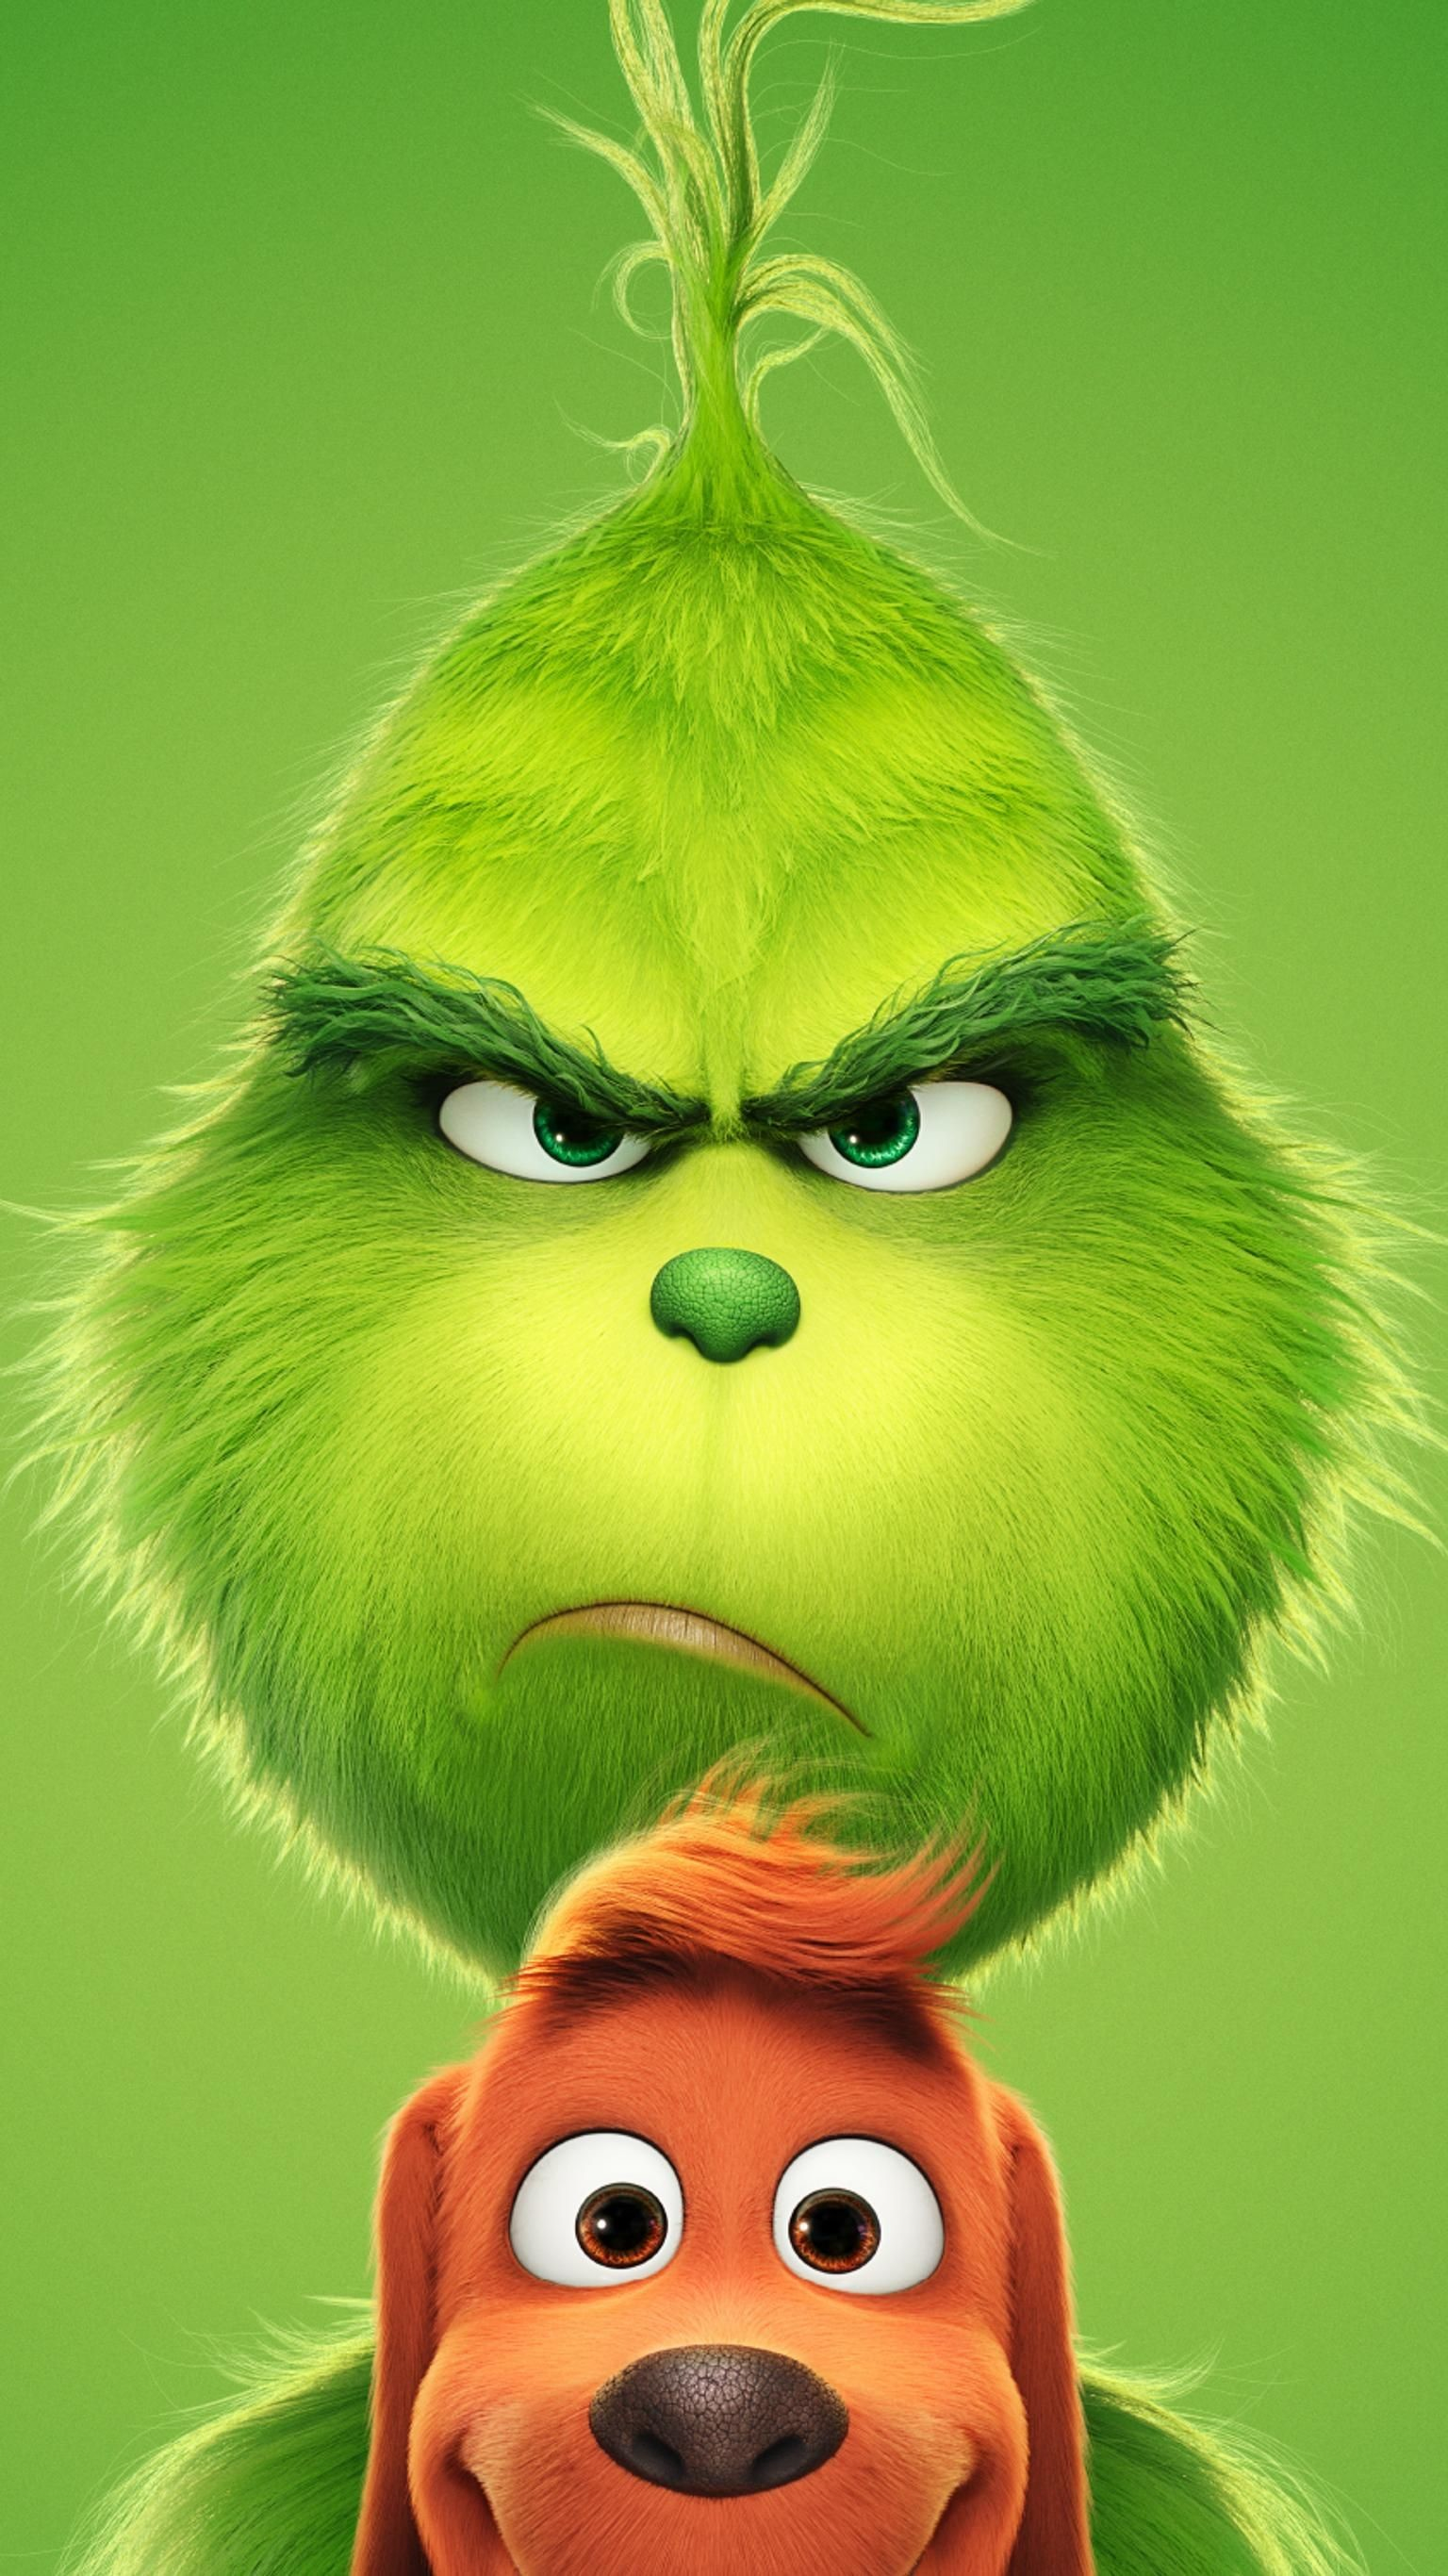 The Grinch Wallpaper (78+ images)